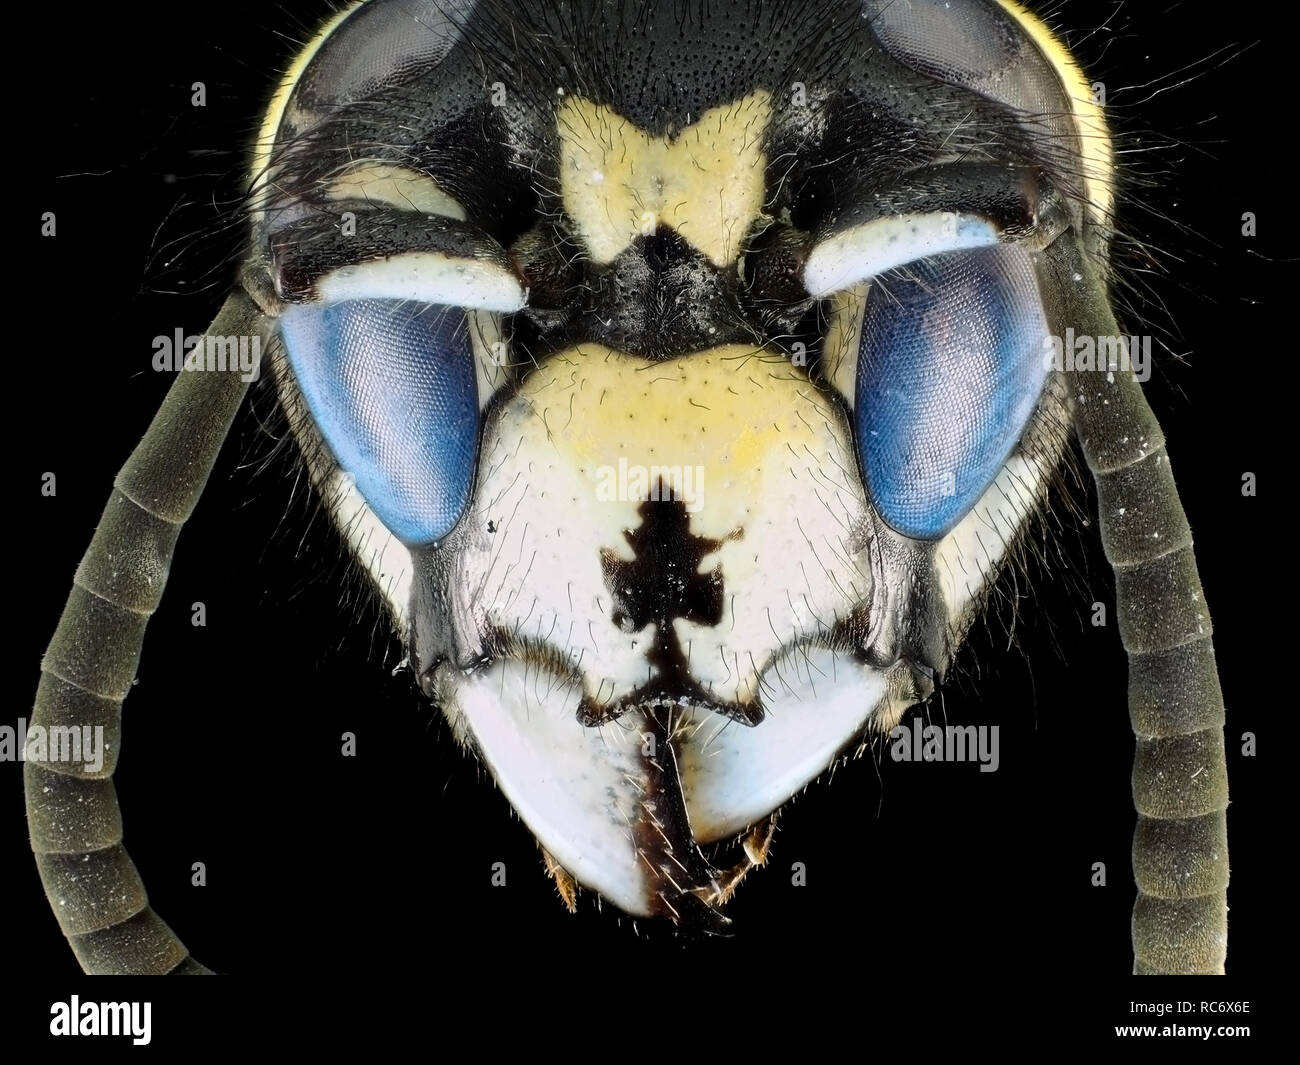 Extreme macro shot (micrograph) of a wasp (Vespula sp.) with fluorescent eyes, in visible and ultraviolet light - Stock Image